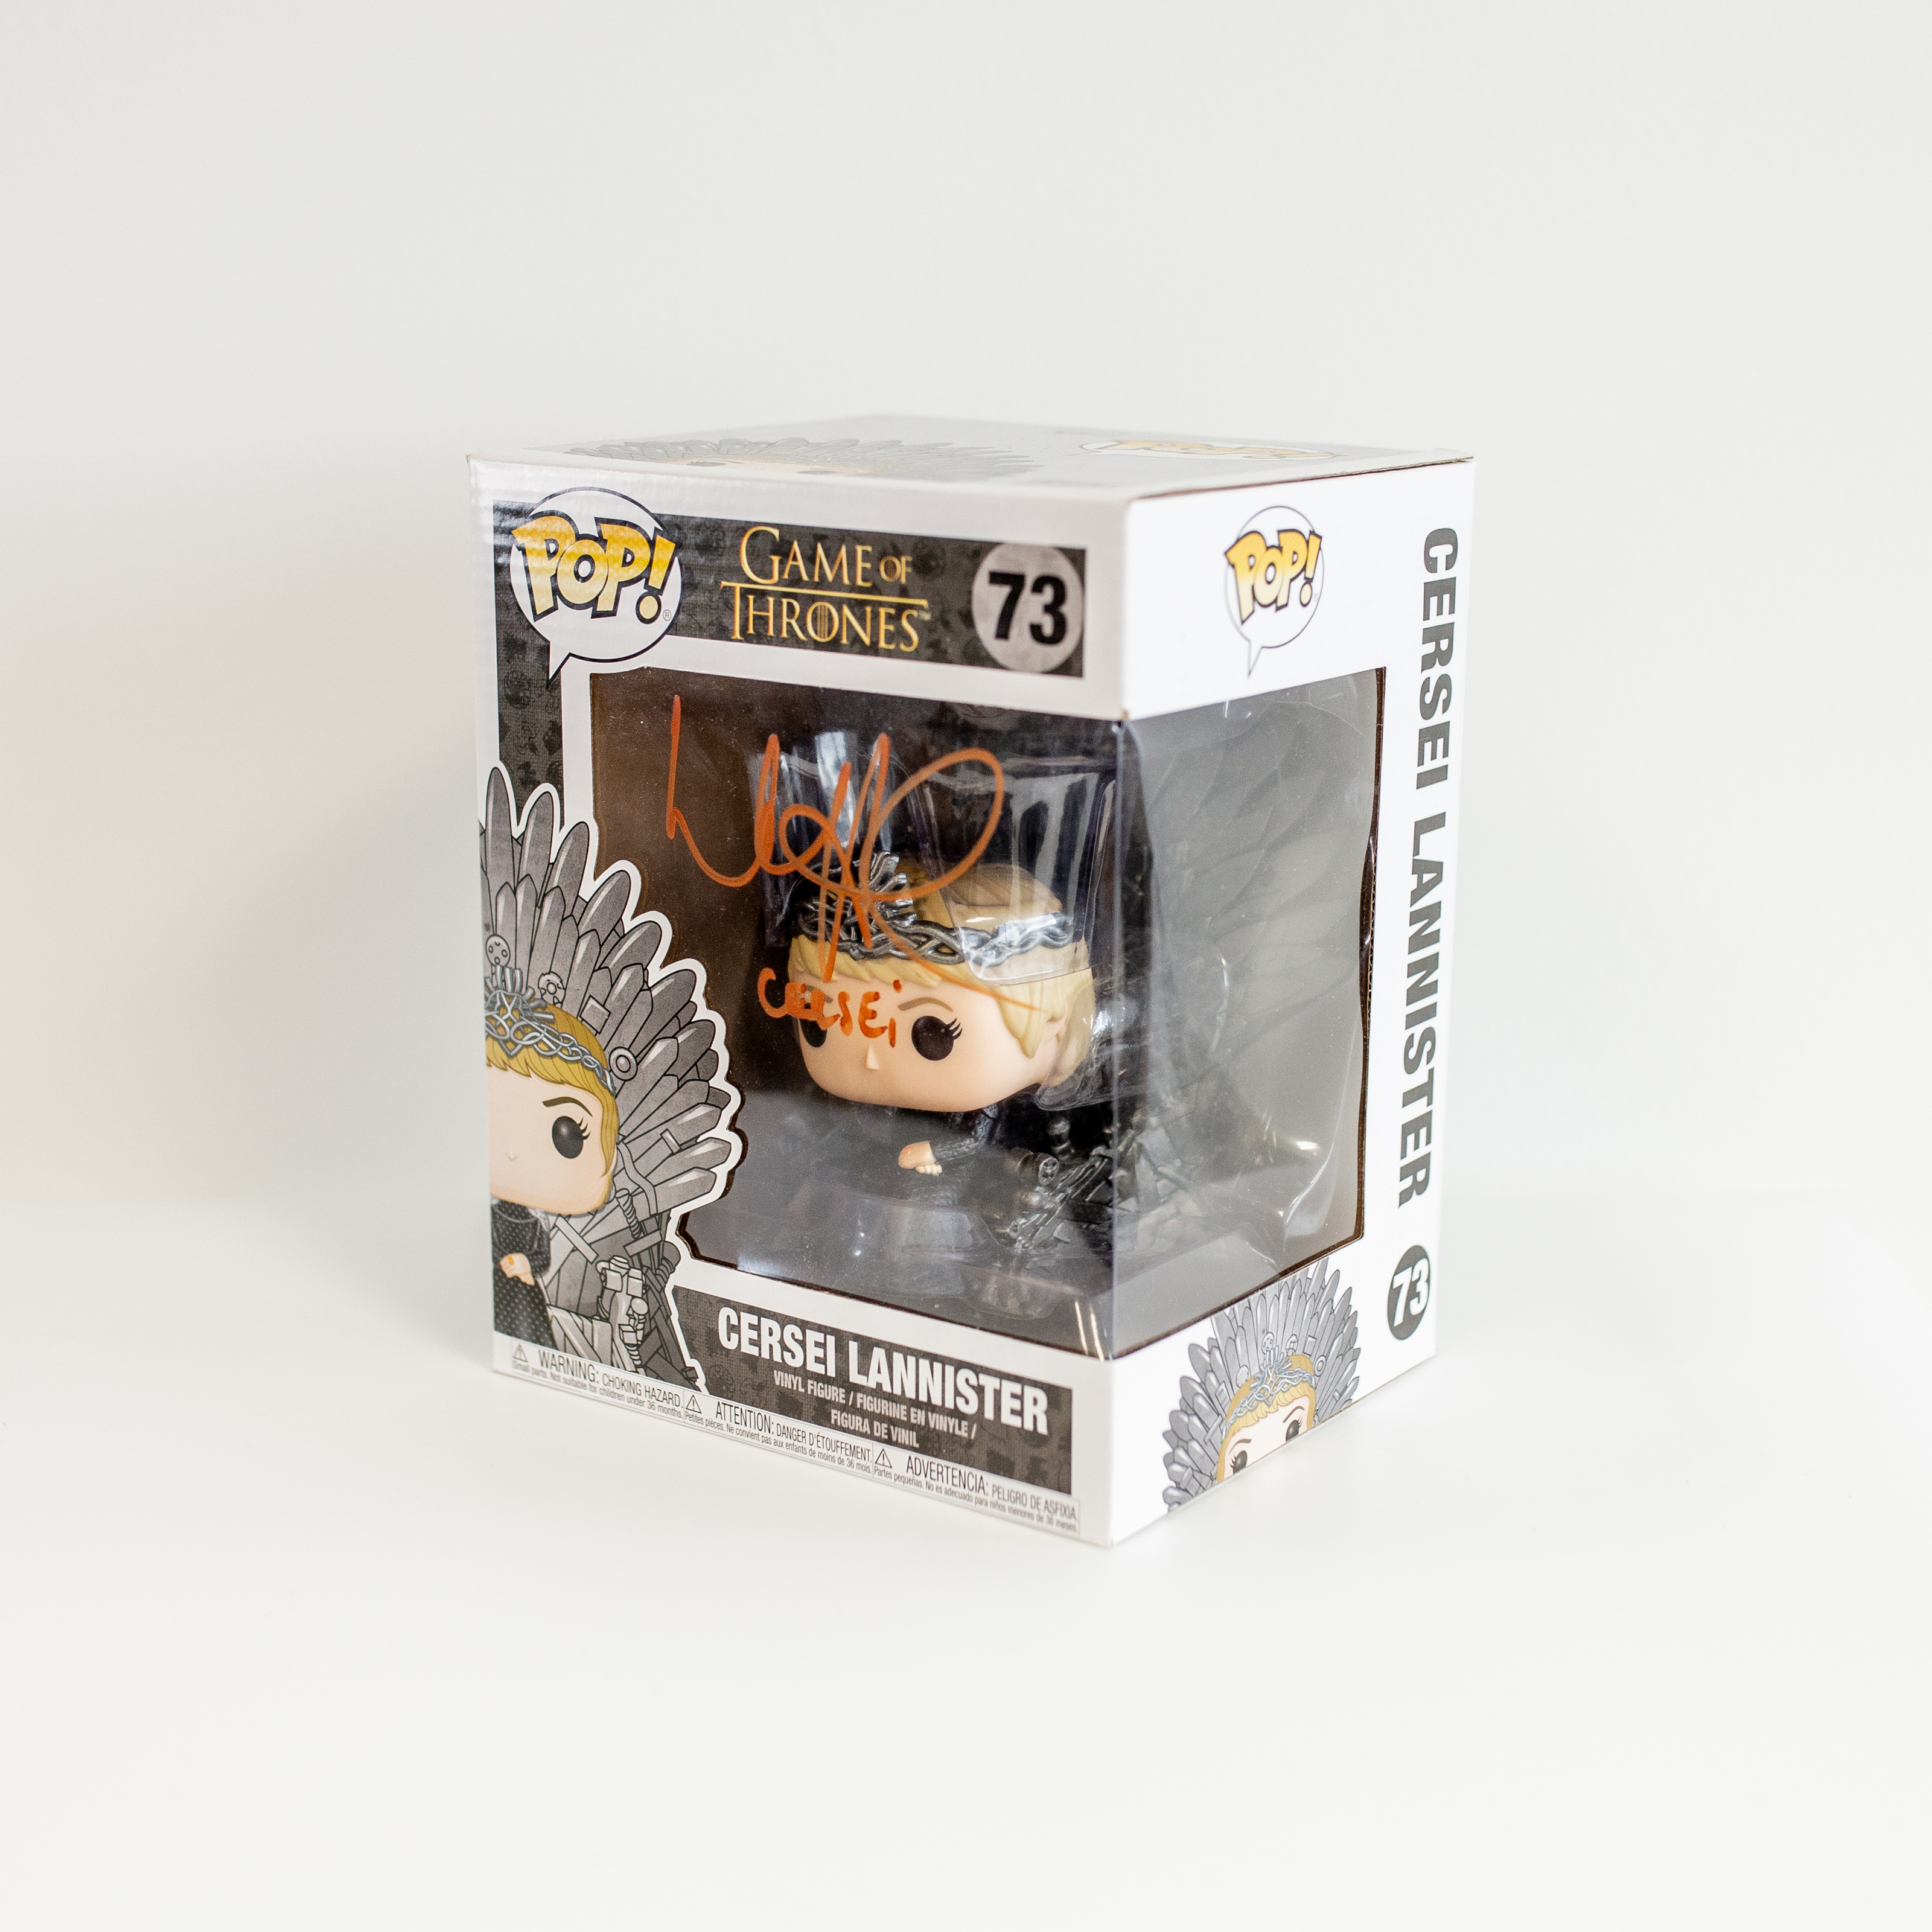 Lena Headey Original Autogramm auf Funko POP! Game of Thrones - Cersei Lannister (Braune Signatur)